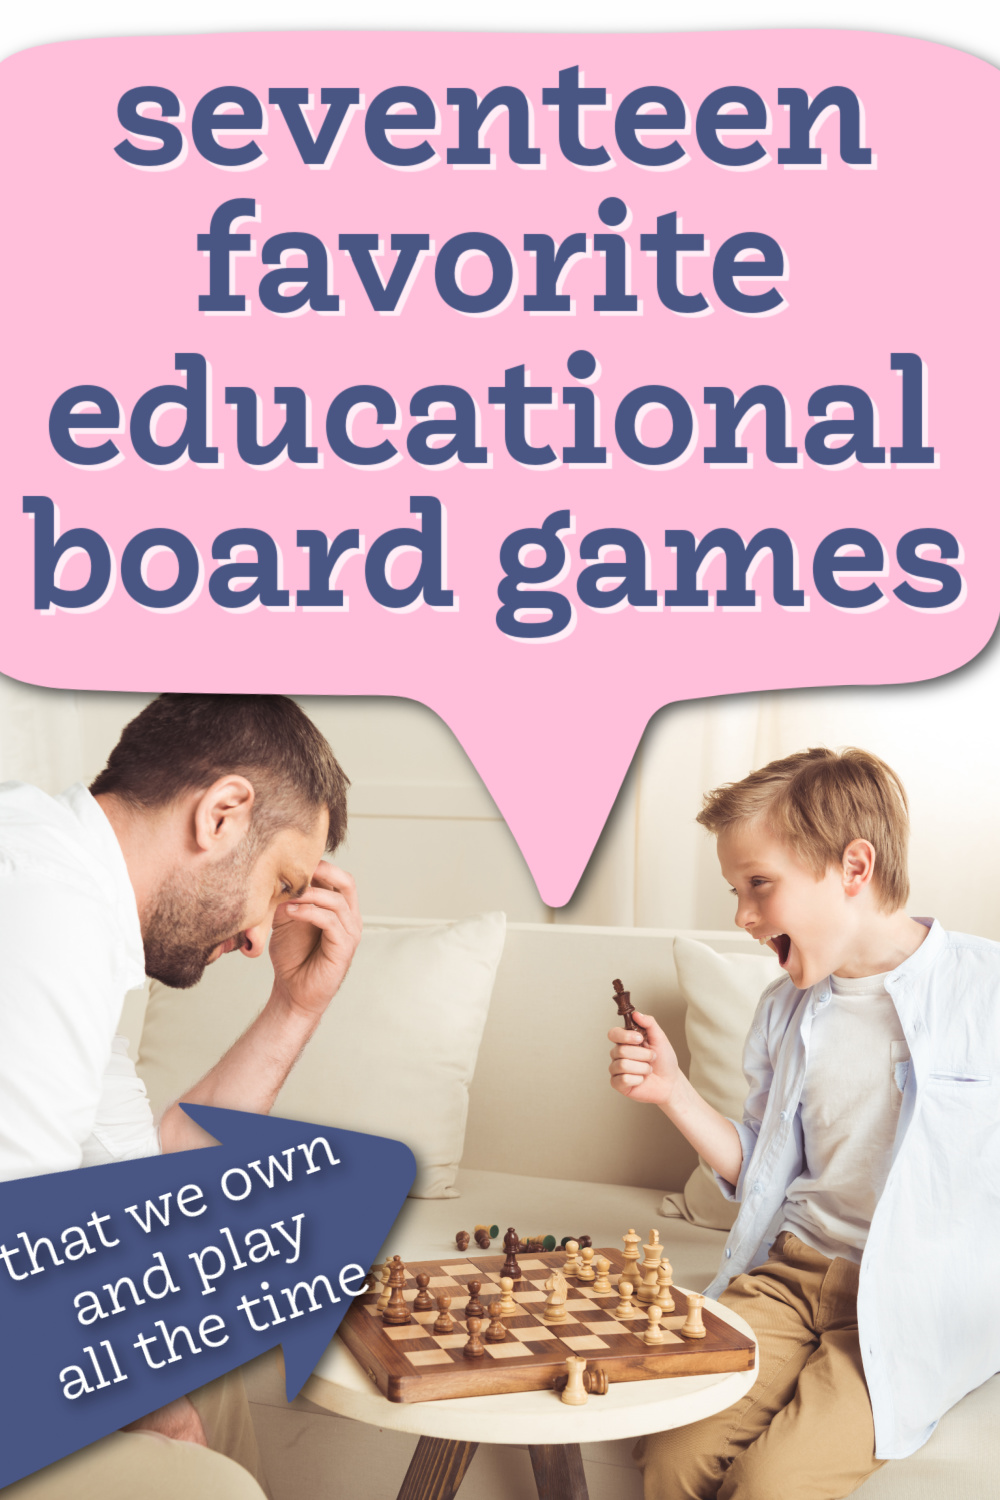 father and son playing educational board games together